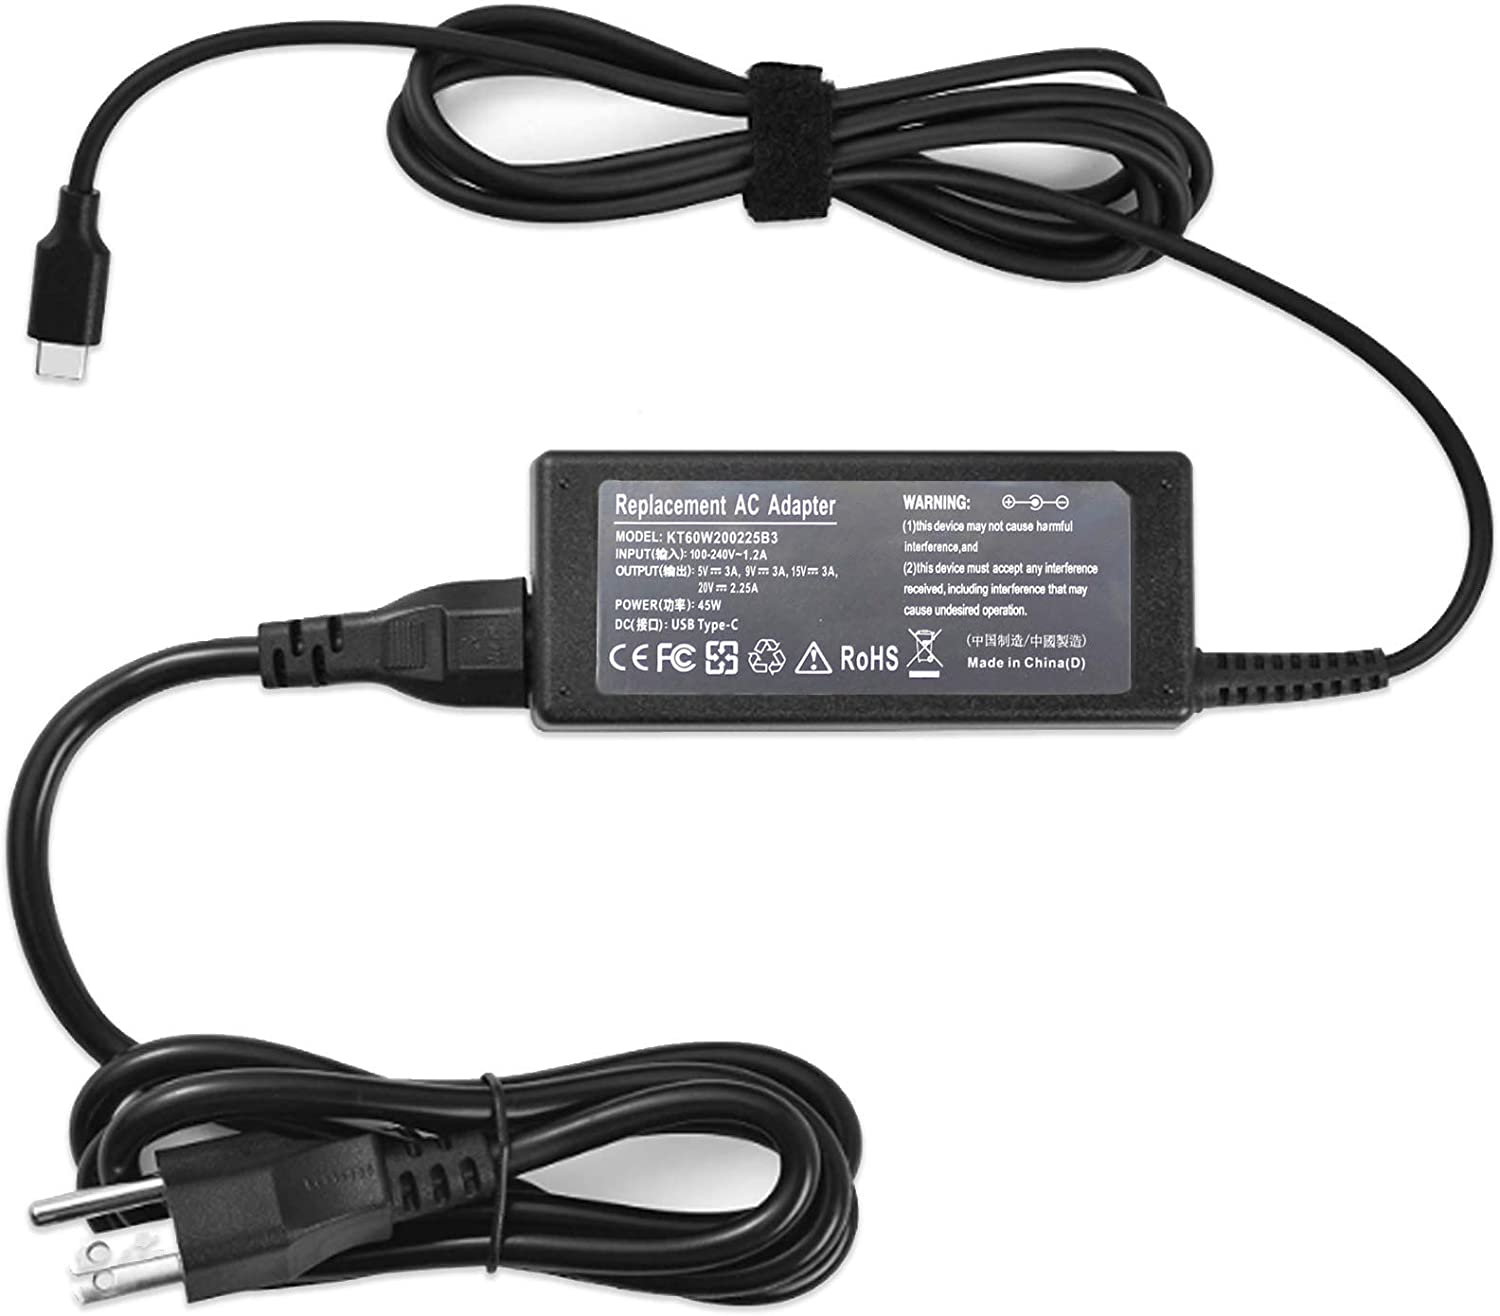 45W USB/Type C Mini Charger Ac Adapter for HP Chromebook X360 14 14A G5 14-ca061dx 14-ca020nr Dell XPS 13 9365 9370 9380 Lenovo C330 100e 300e 500e Chromebook 20V 2.25A